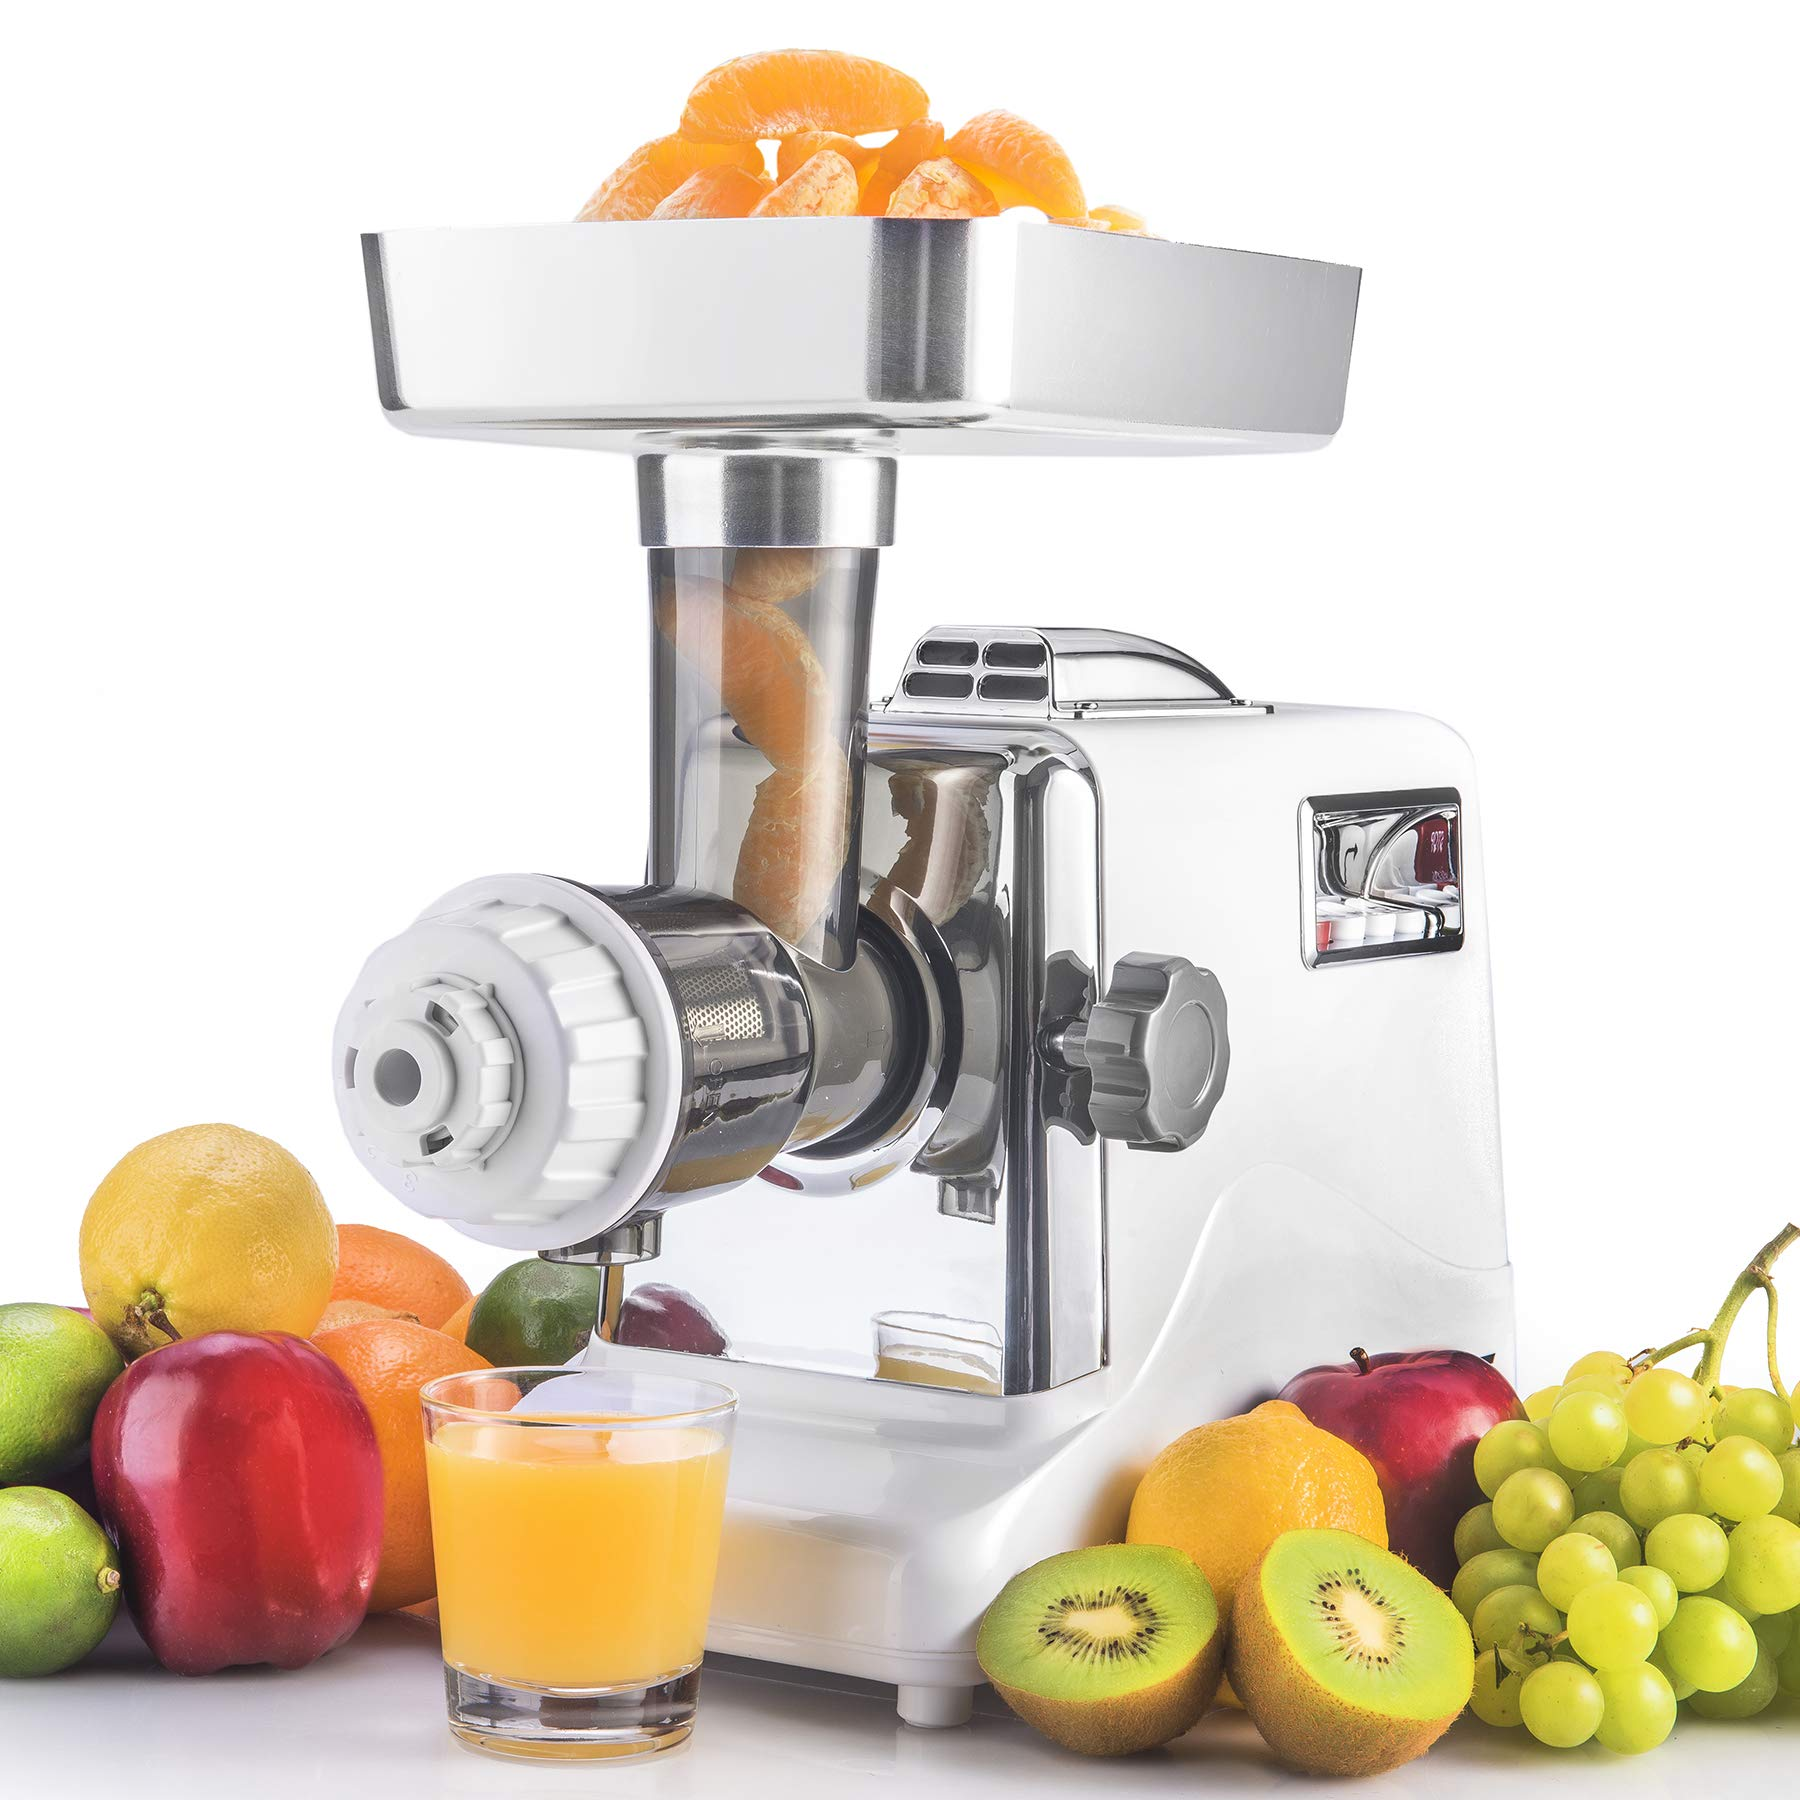 The STX Megaforce Platinum Series Patented Air Cooled - 2 In 1 - Slow Masticating Juicer & Electric Meat Grinder Complete Combo. A Heavy Duty Unique Masticating Juicer & Powerful Electric Meat Grinder by STX INTERNATIONAL